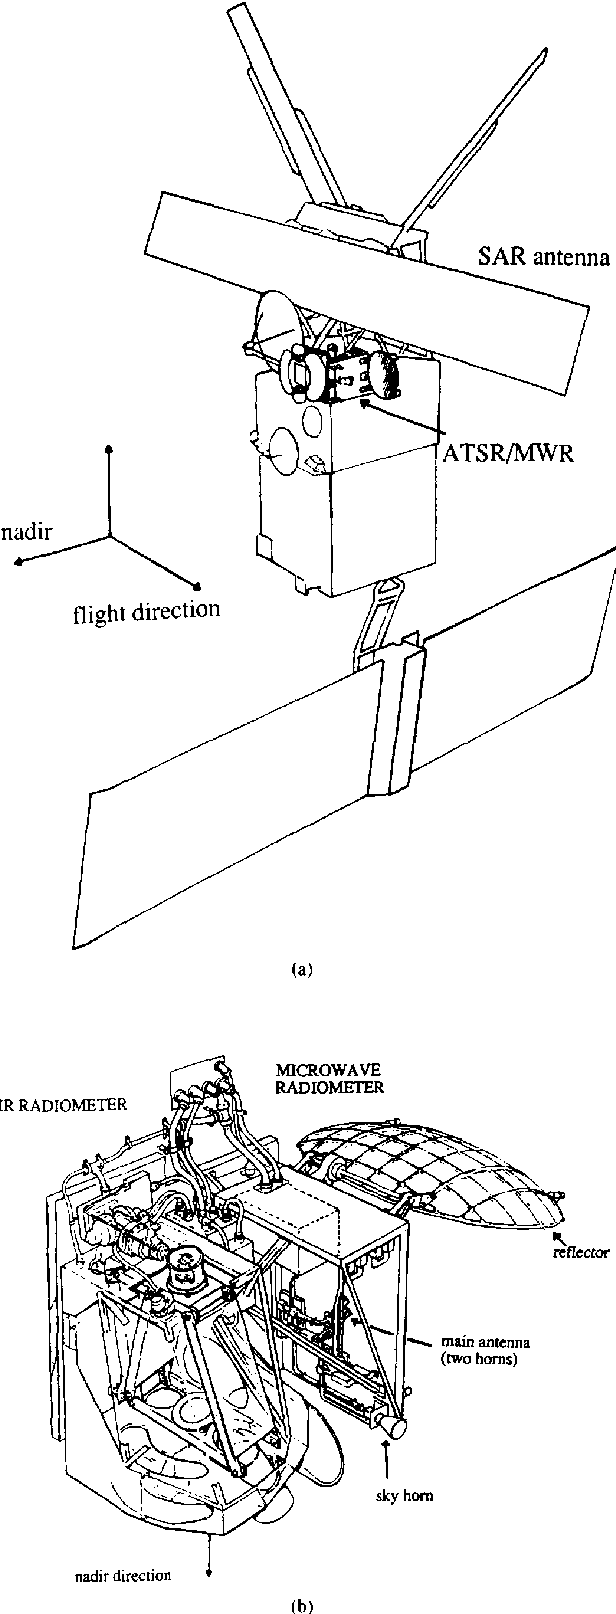 hight resolution of  a schematic view of the radiometer implementation on the satellite